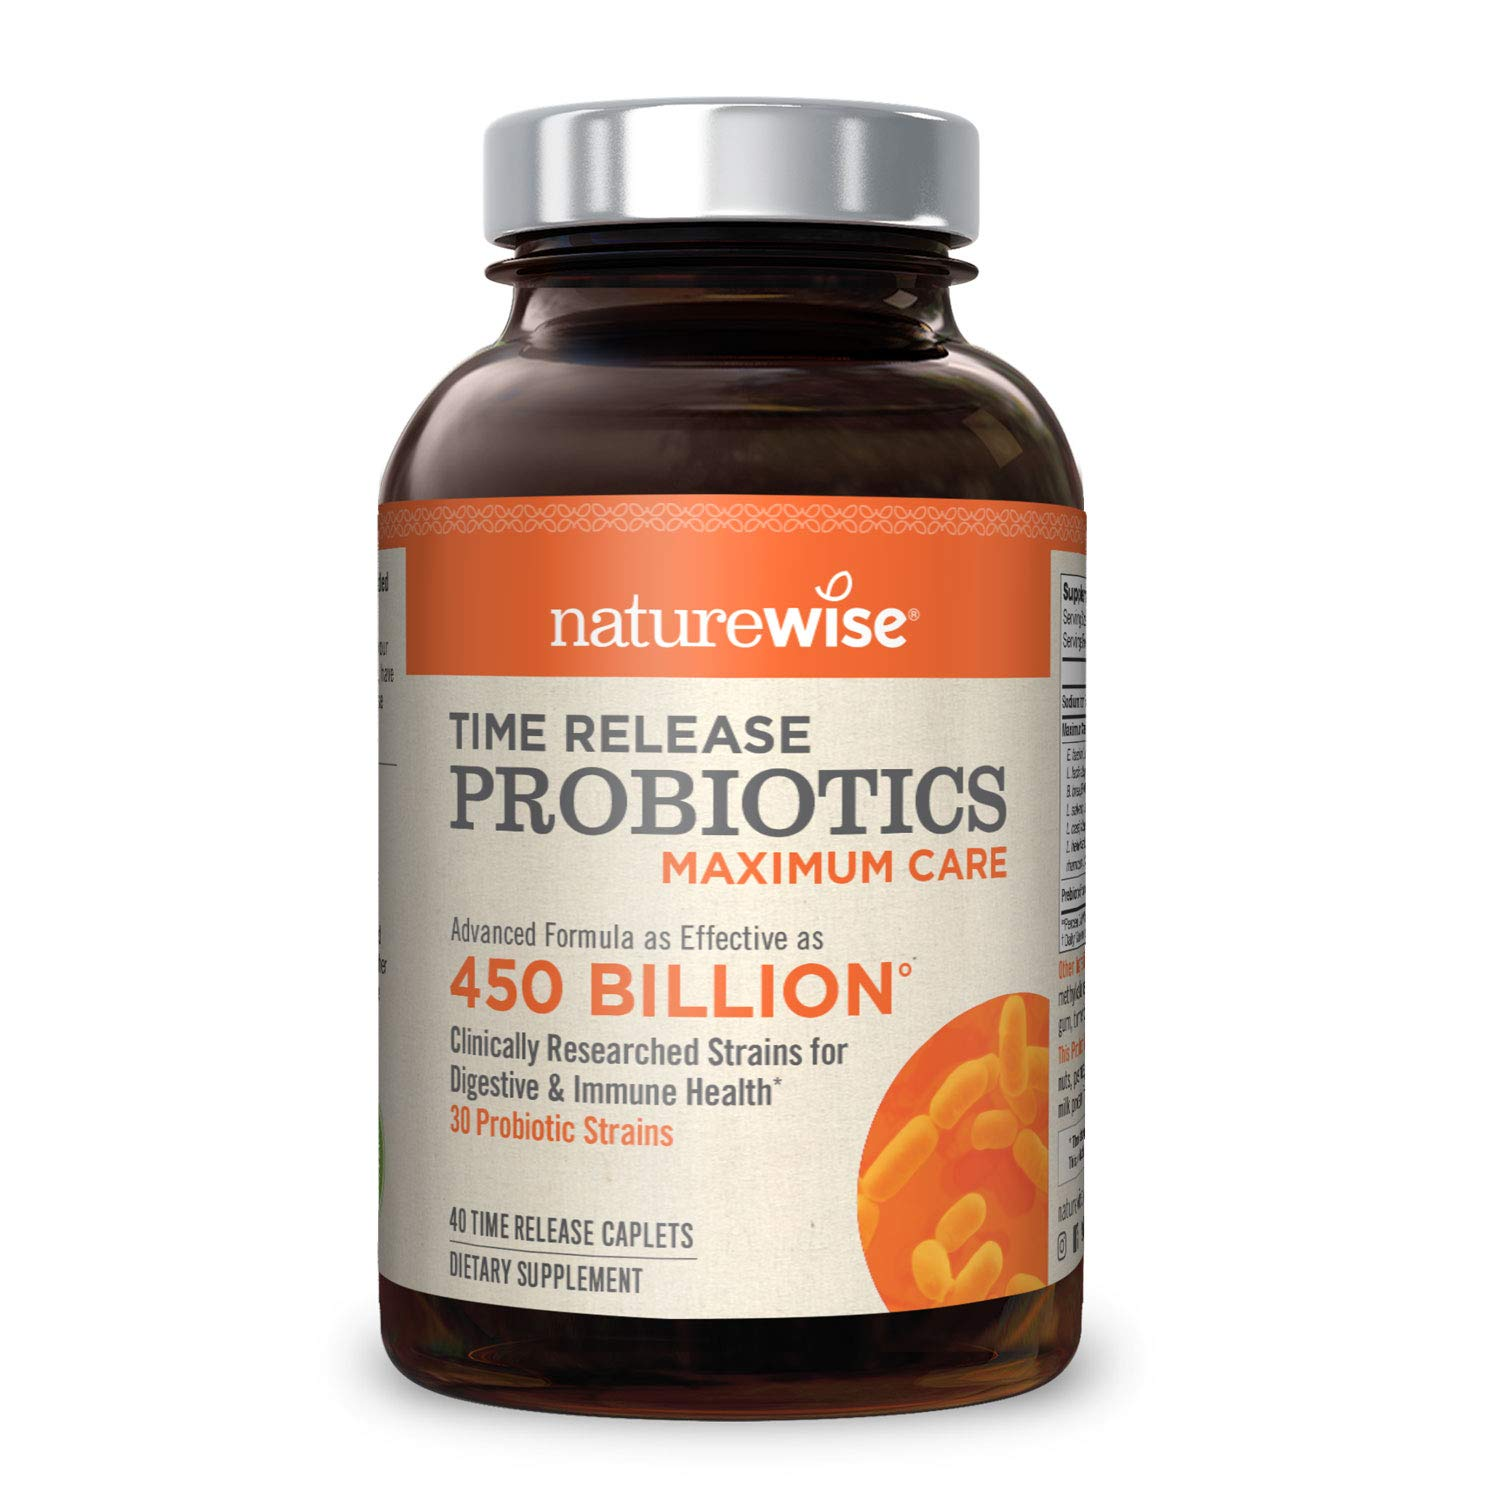 NatureWise Max Probiotics for Men & Women | Time-Release Caplets Comparable to 450 Billion CFU with 30 Strains, WiseBiotics Technology, Shelf Stable, & Acid Resistant [1 Month Supply - 40 Caplets] by NatureWise